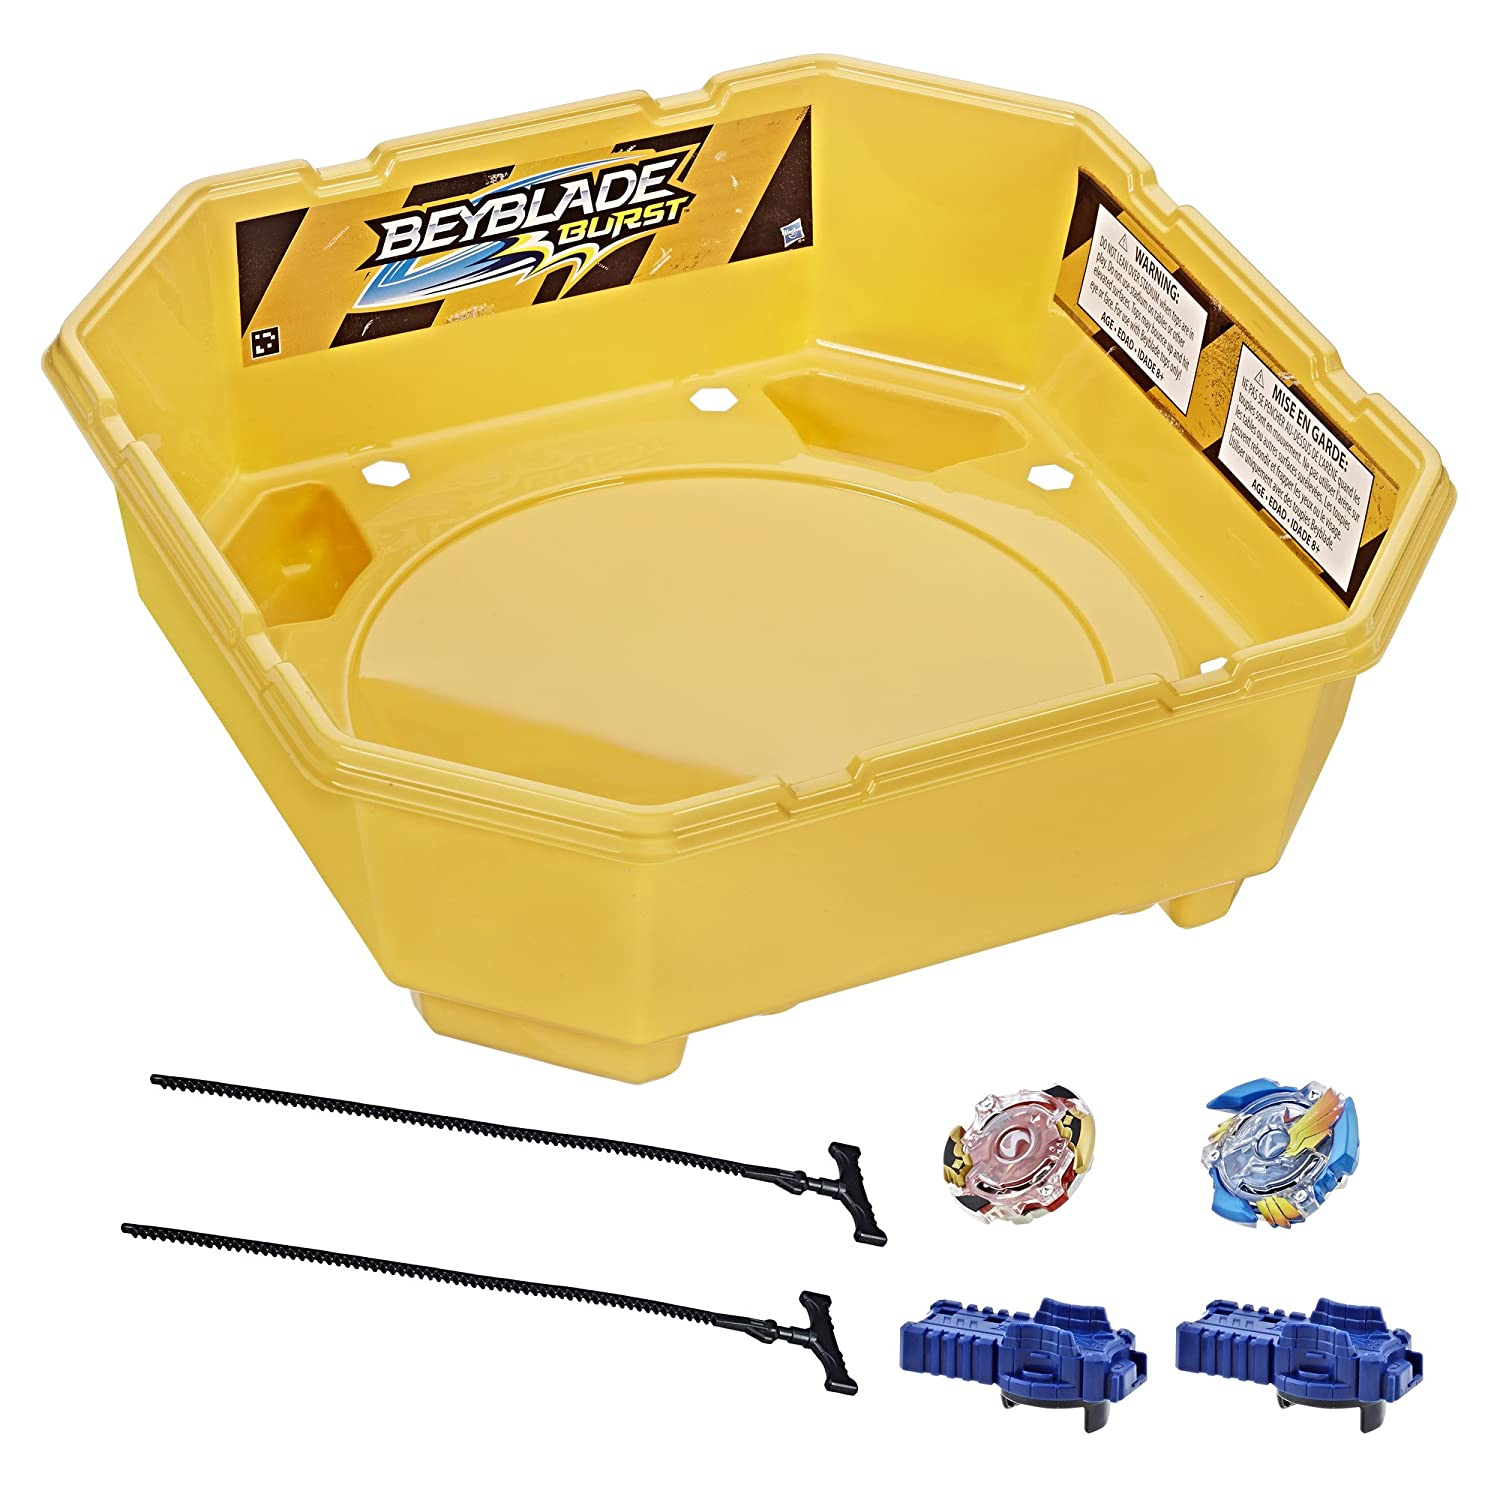 Beyblade Burst Epic Rivals Battle Set Hasbro B9498